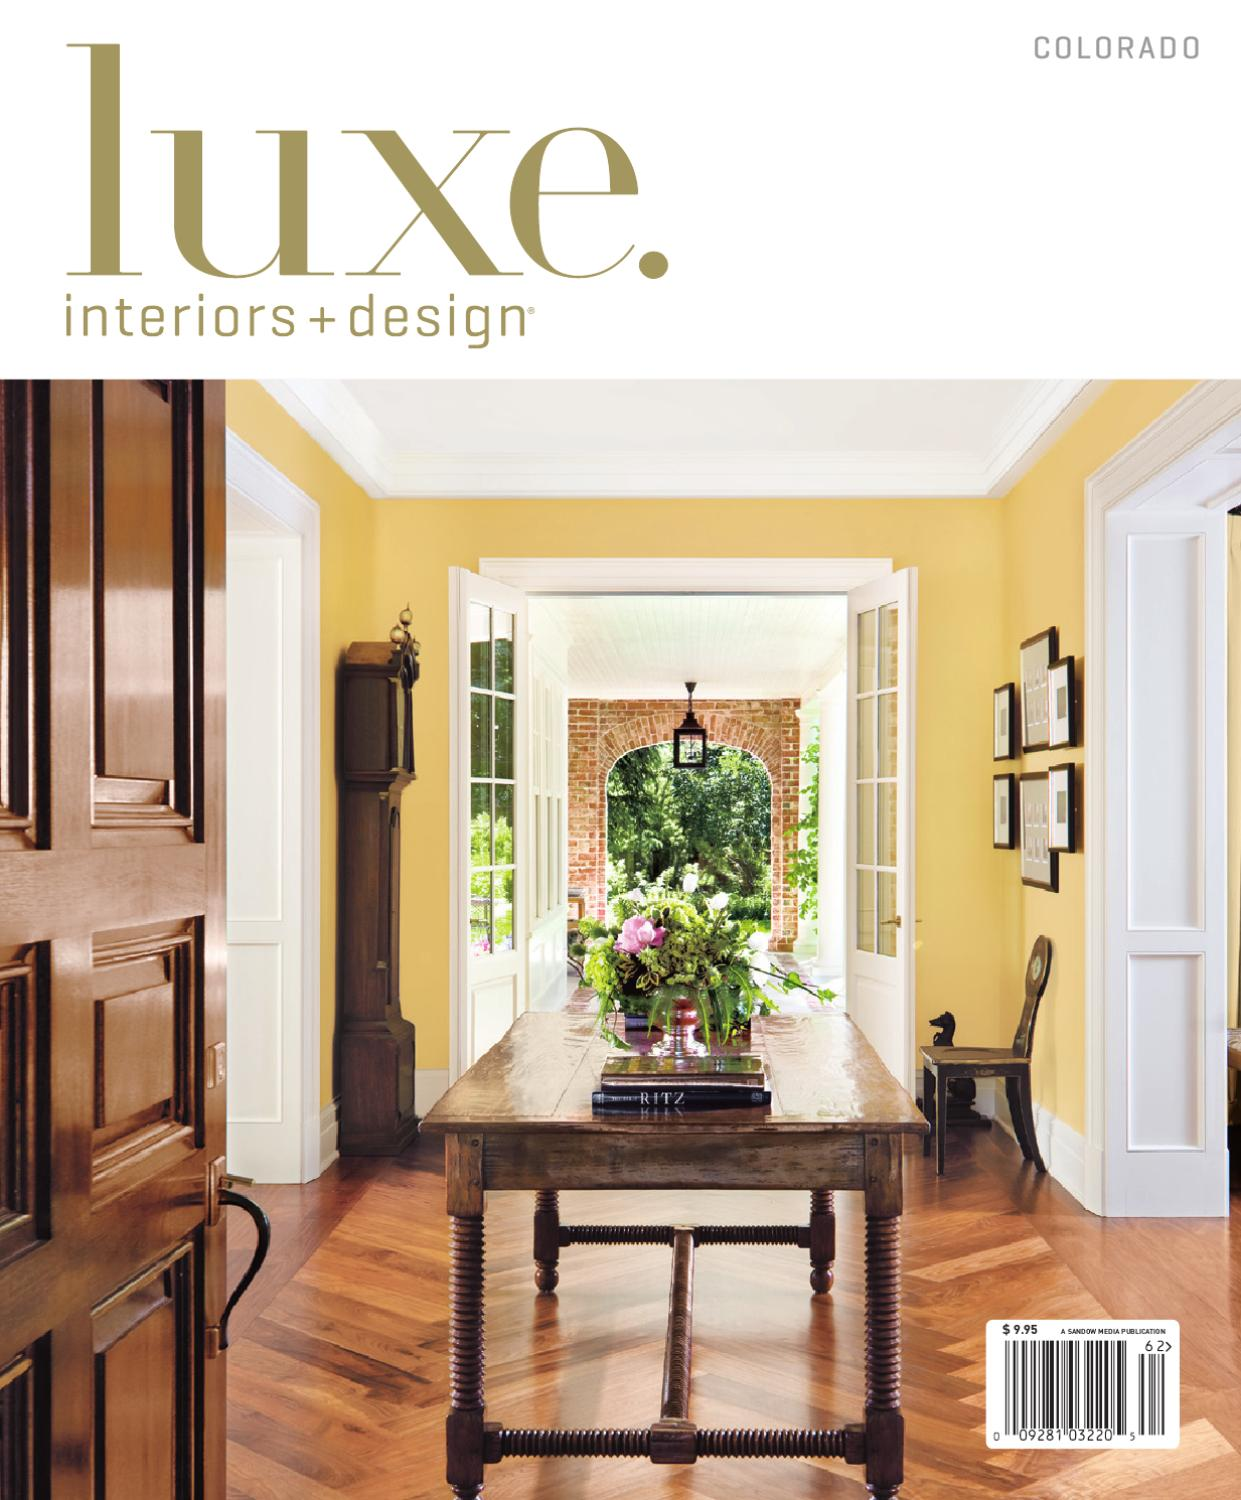 Issuu luxe interior design colorado by sandow media for Luxe interieur design